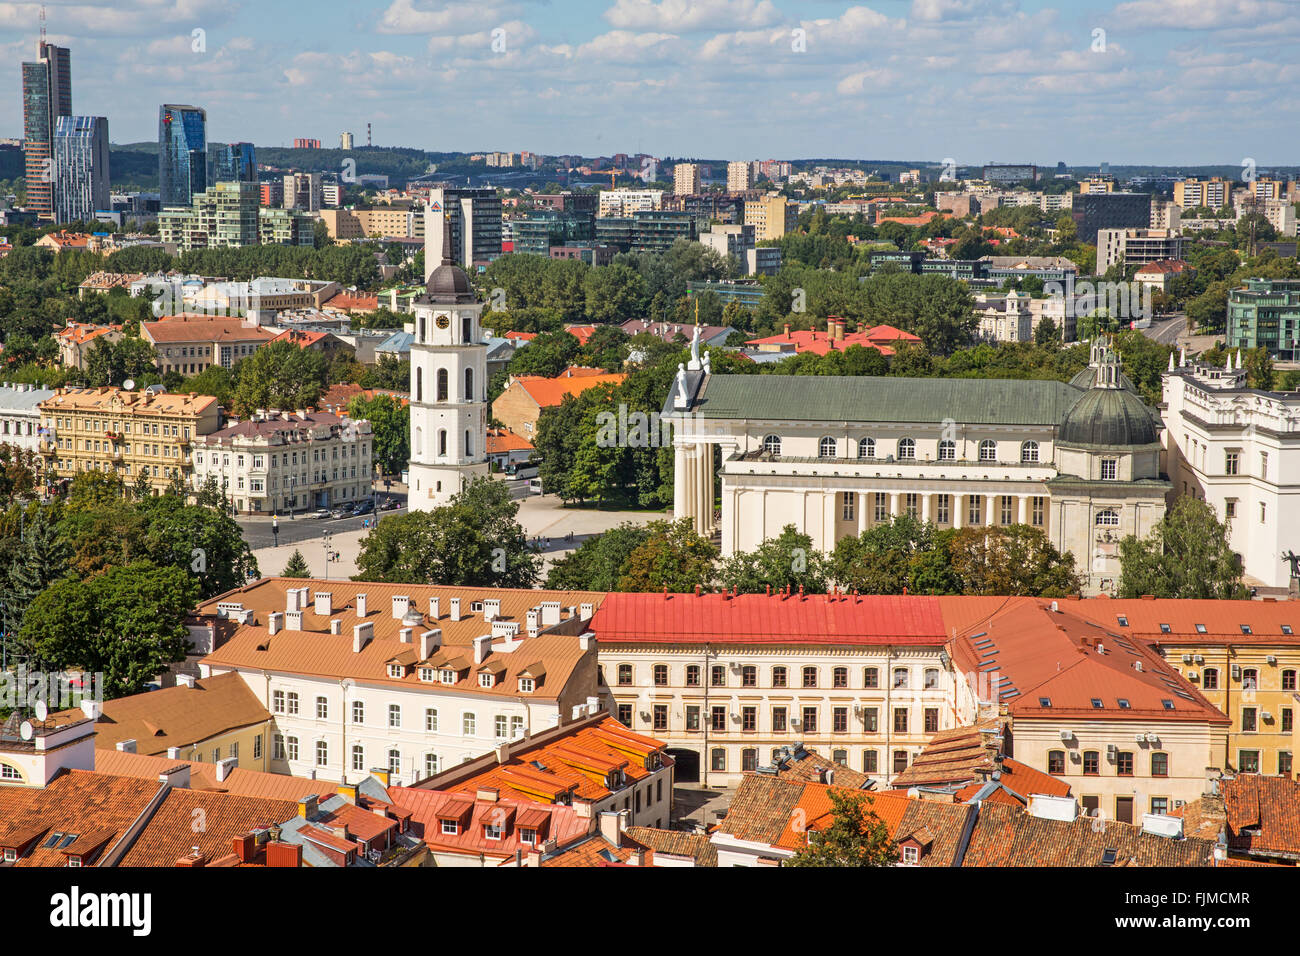 Geographie/Reisen, Litauen, Vilnius, Blick Richtung Arkikatedra Basilika Kathedrale, Additional-Rights - Clearance Stockbild